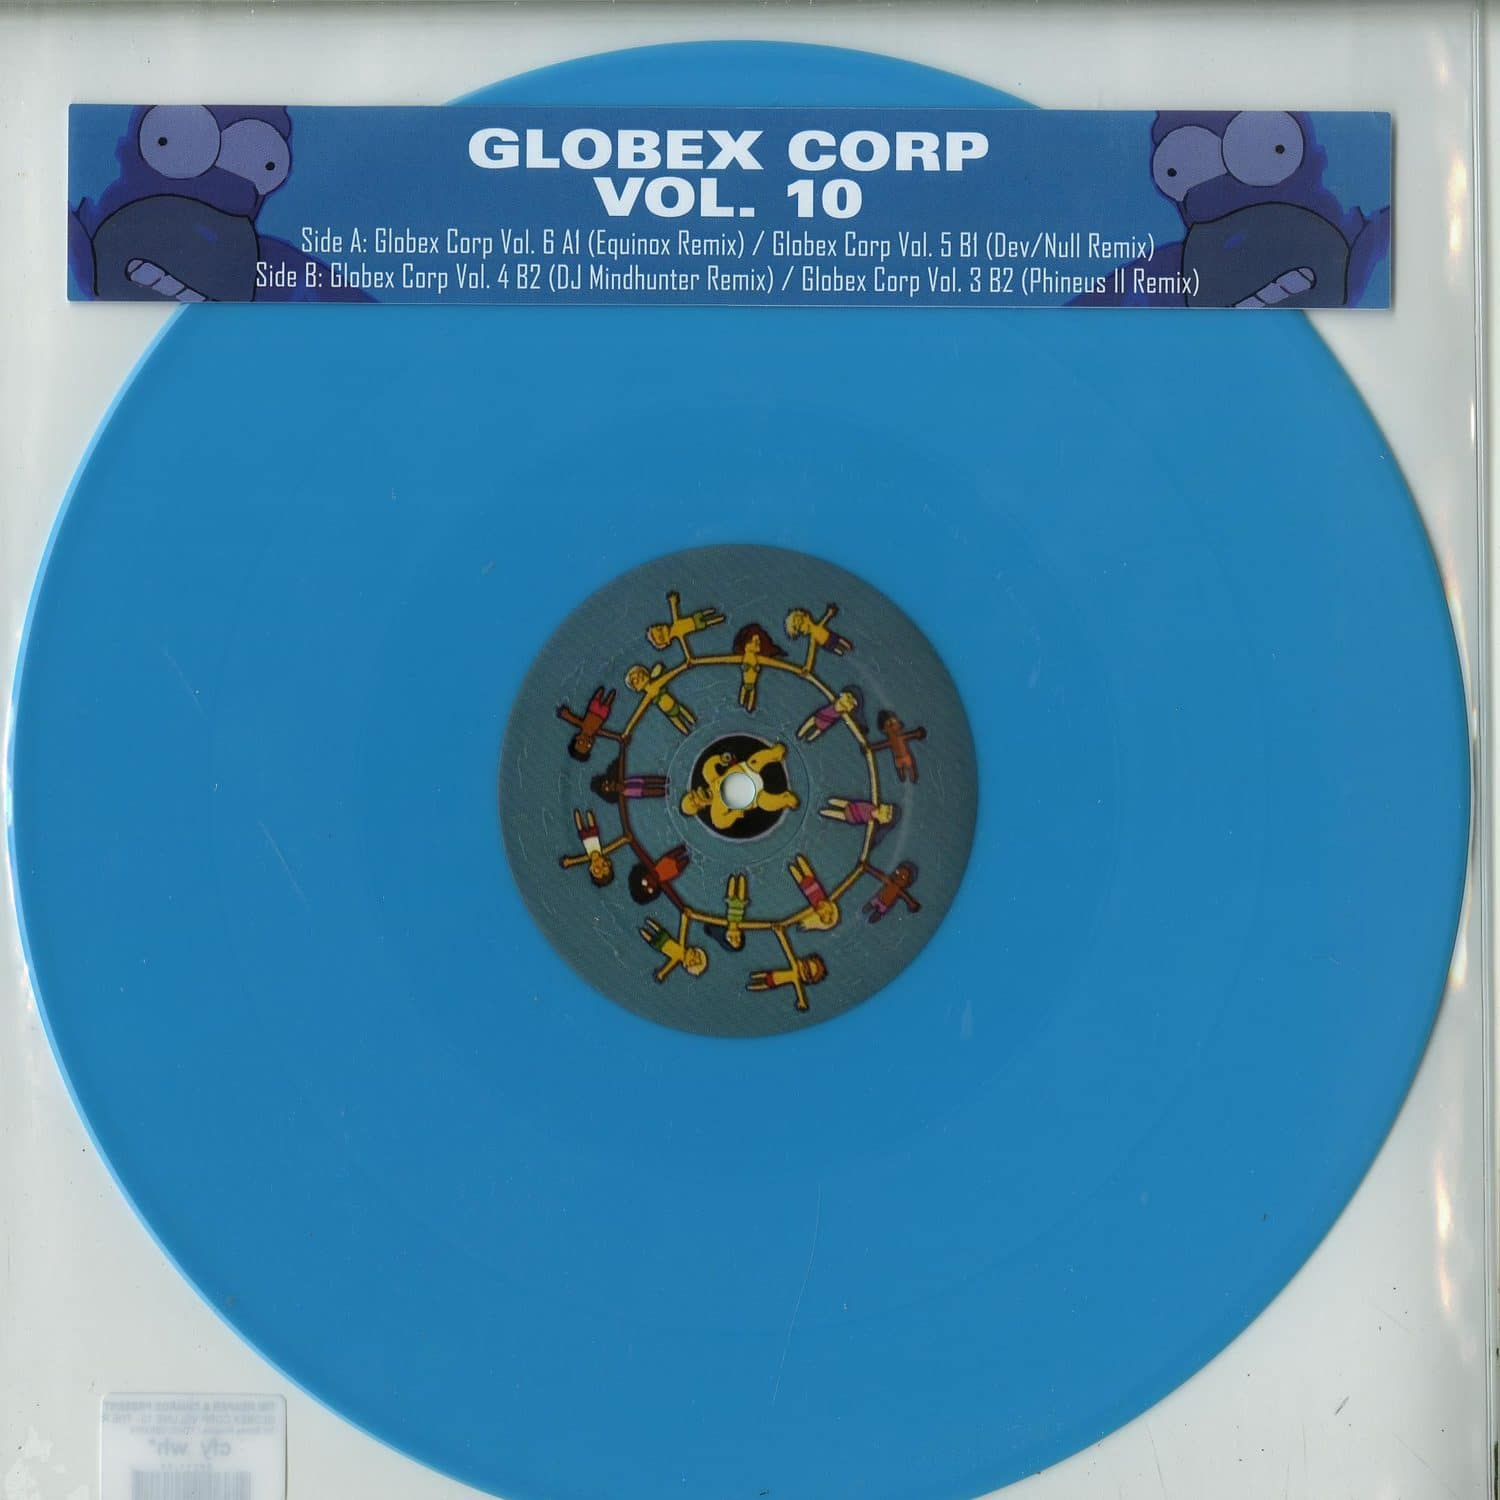 Tim Reaper & Dwarde Present - GLOBEX CORP VOLUME 10 - THE REMIXES